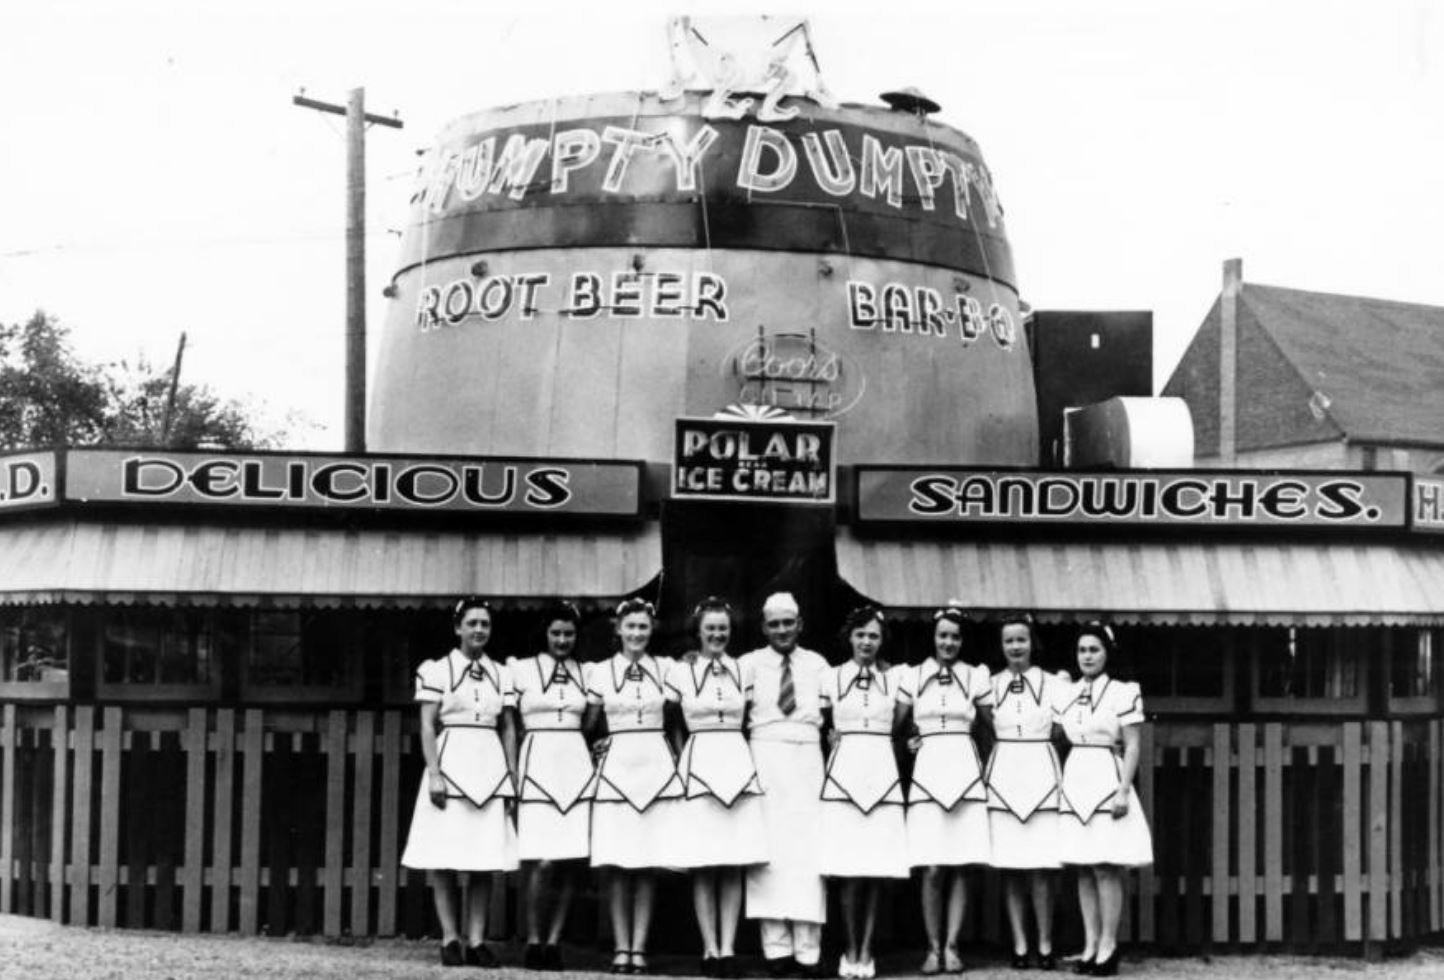 Humpty Dumpty Drive-in, Denver, Colorado - 1930s